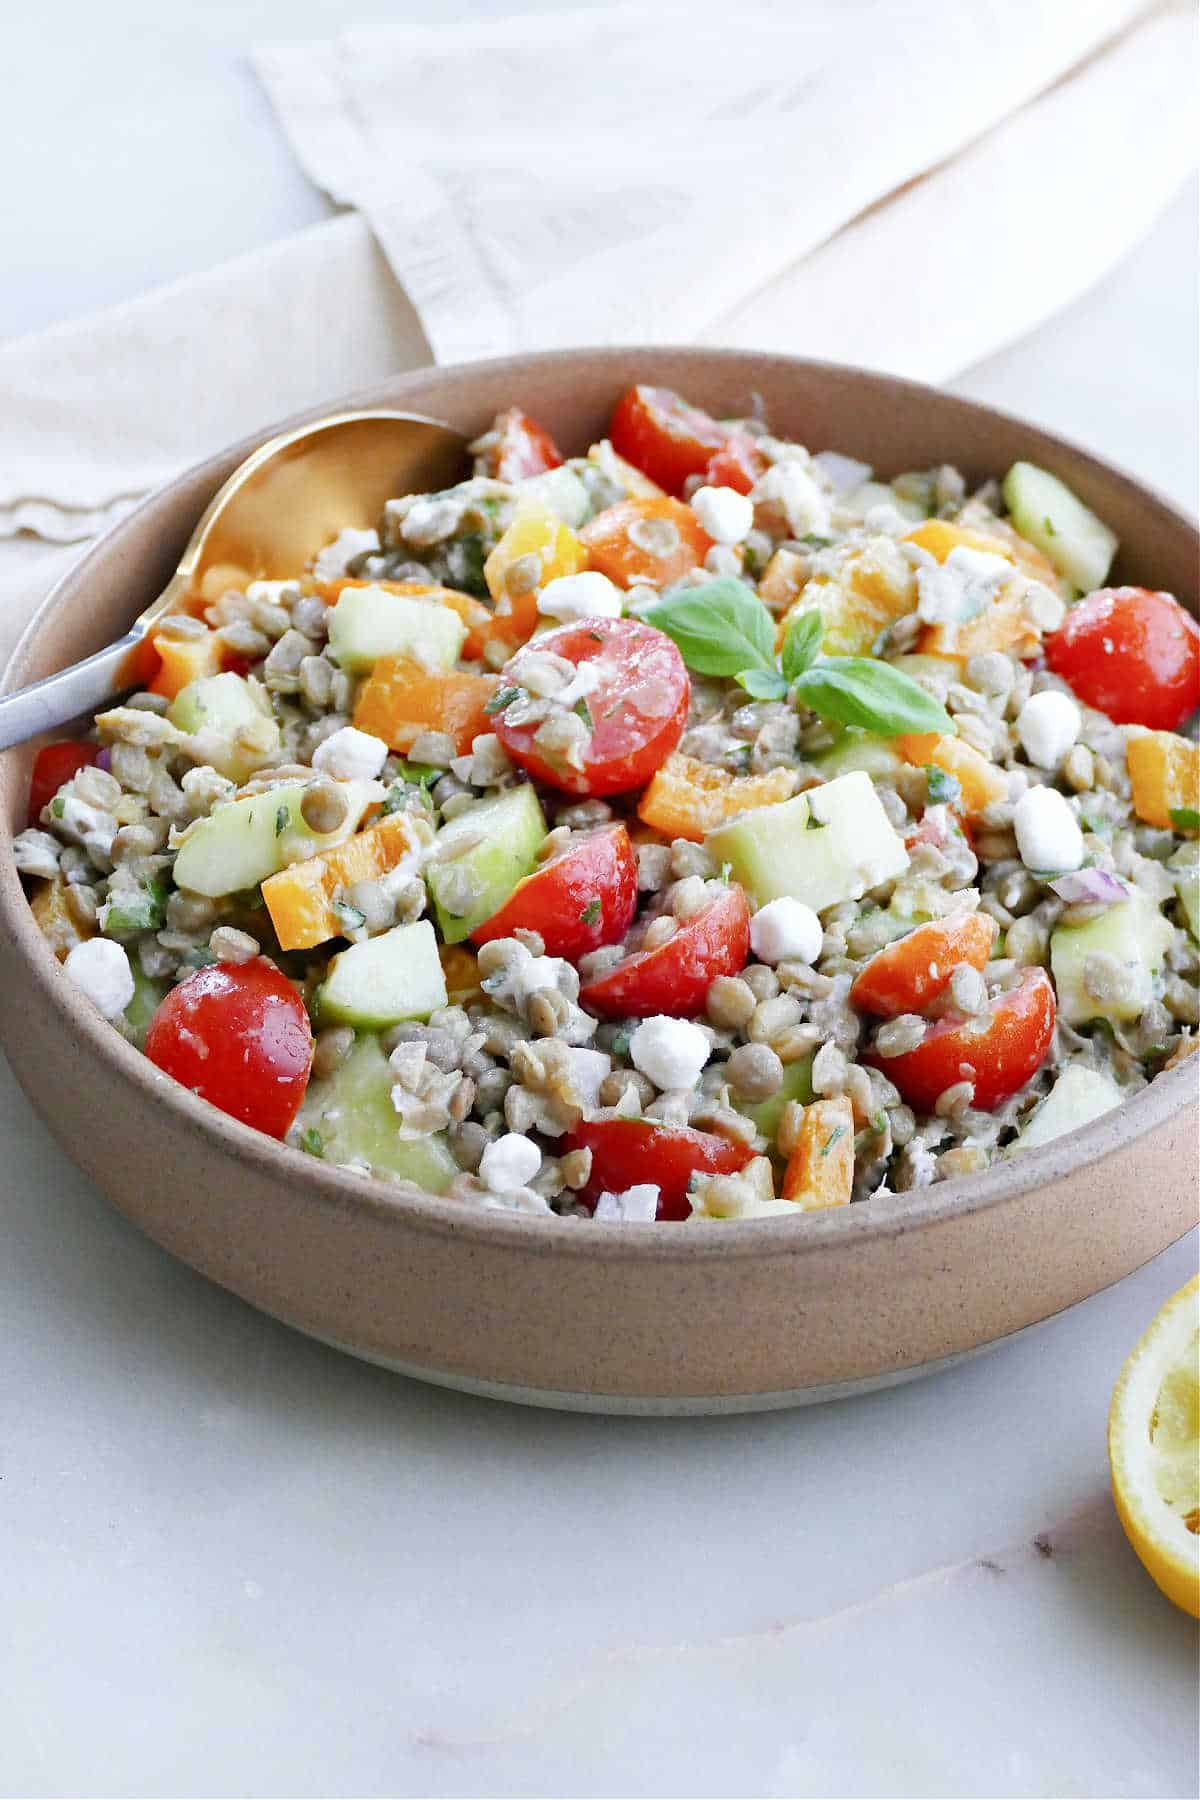 Greek lentil salad topped with basil in a bowl with a golden spoon